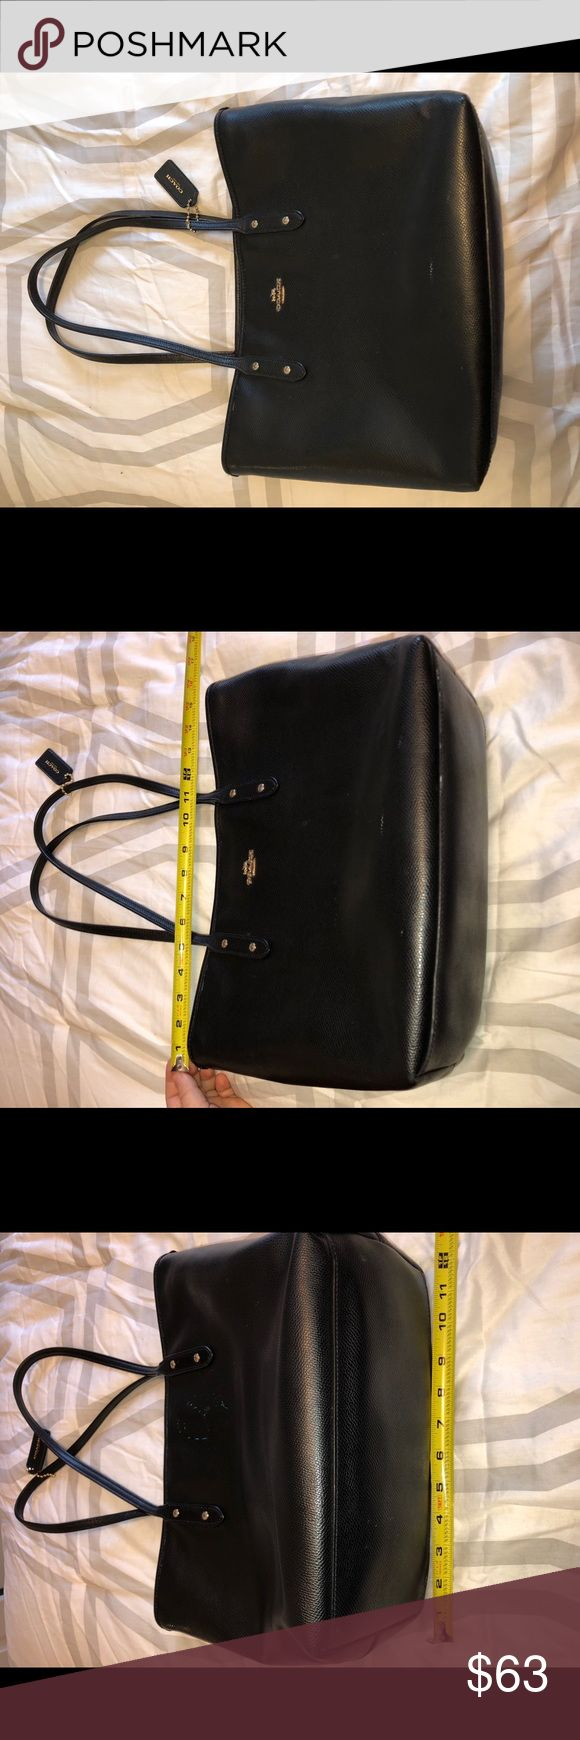 Beautiful black Coach purse This purse is amazing! I have used It a ton, so there is some wear (shown in the pictures). It has a real paint stain on the side ( I'm not sure if It can be removed, I️ haven't tried). The straps also have some wear (shown in the pictures) the purse is still in good condition and still has a lot of life left in It. Make me an offer! :) Coach Bags Shoulder Bags